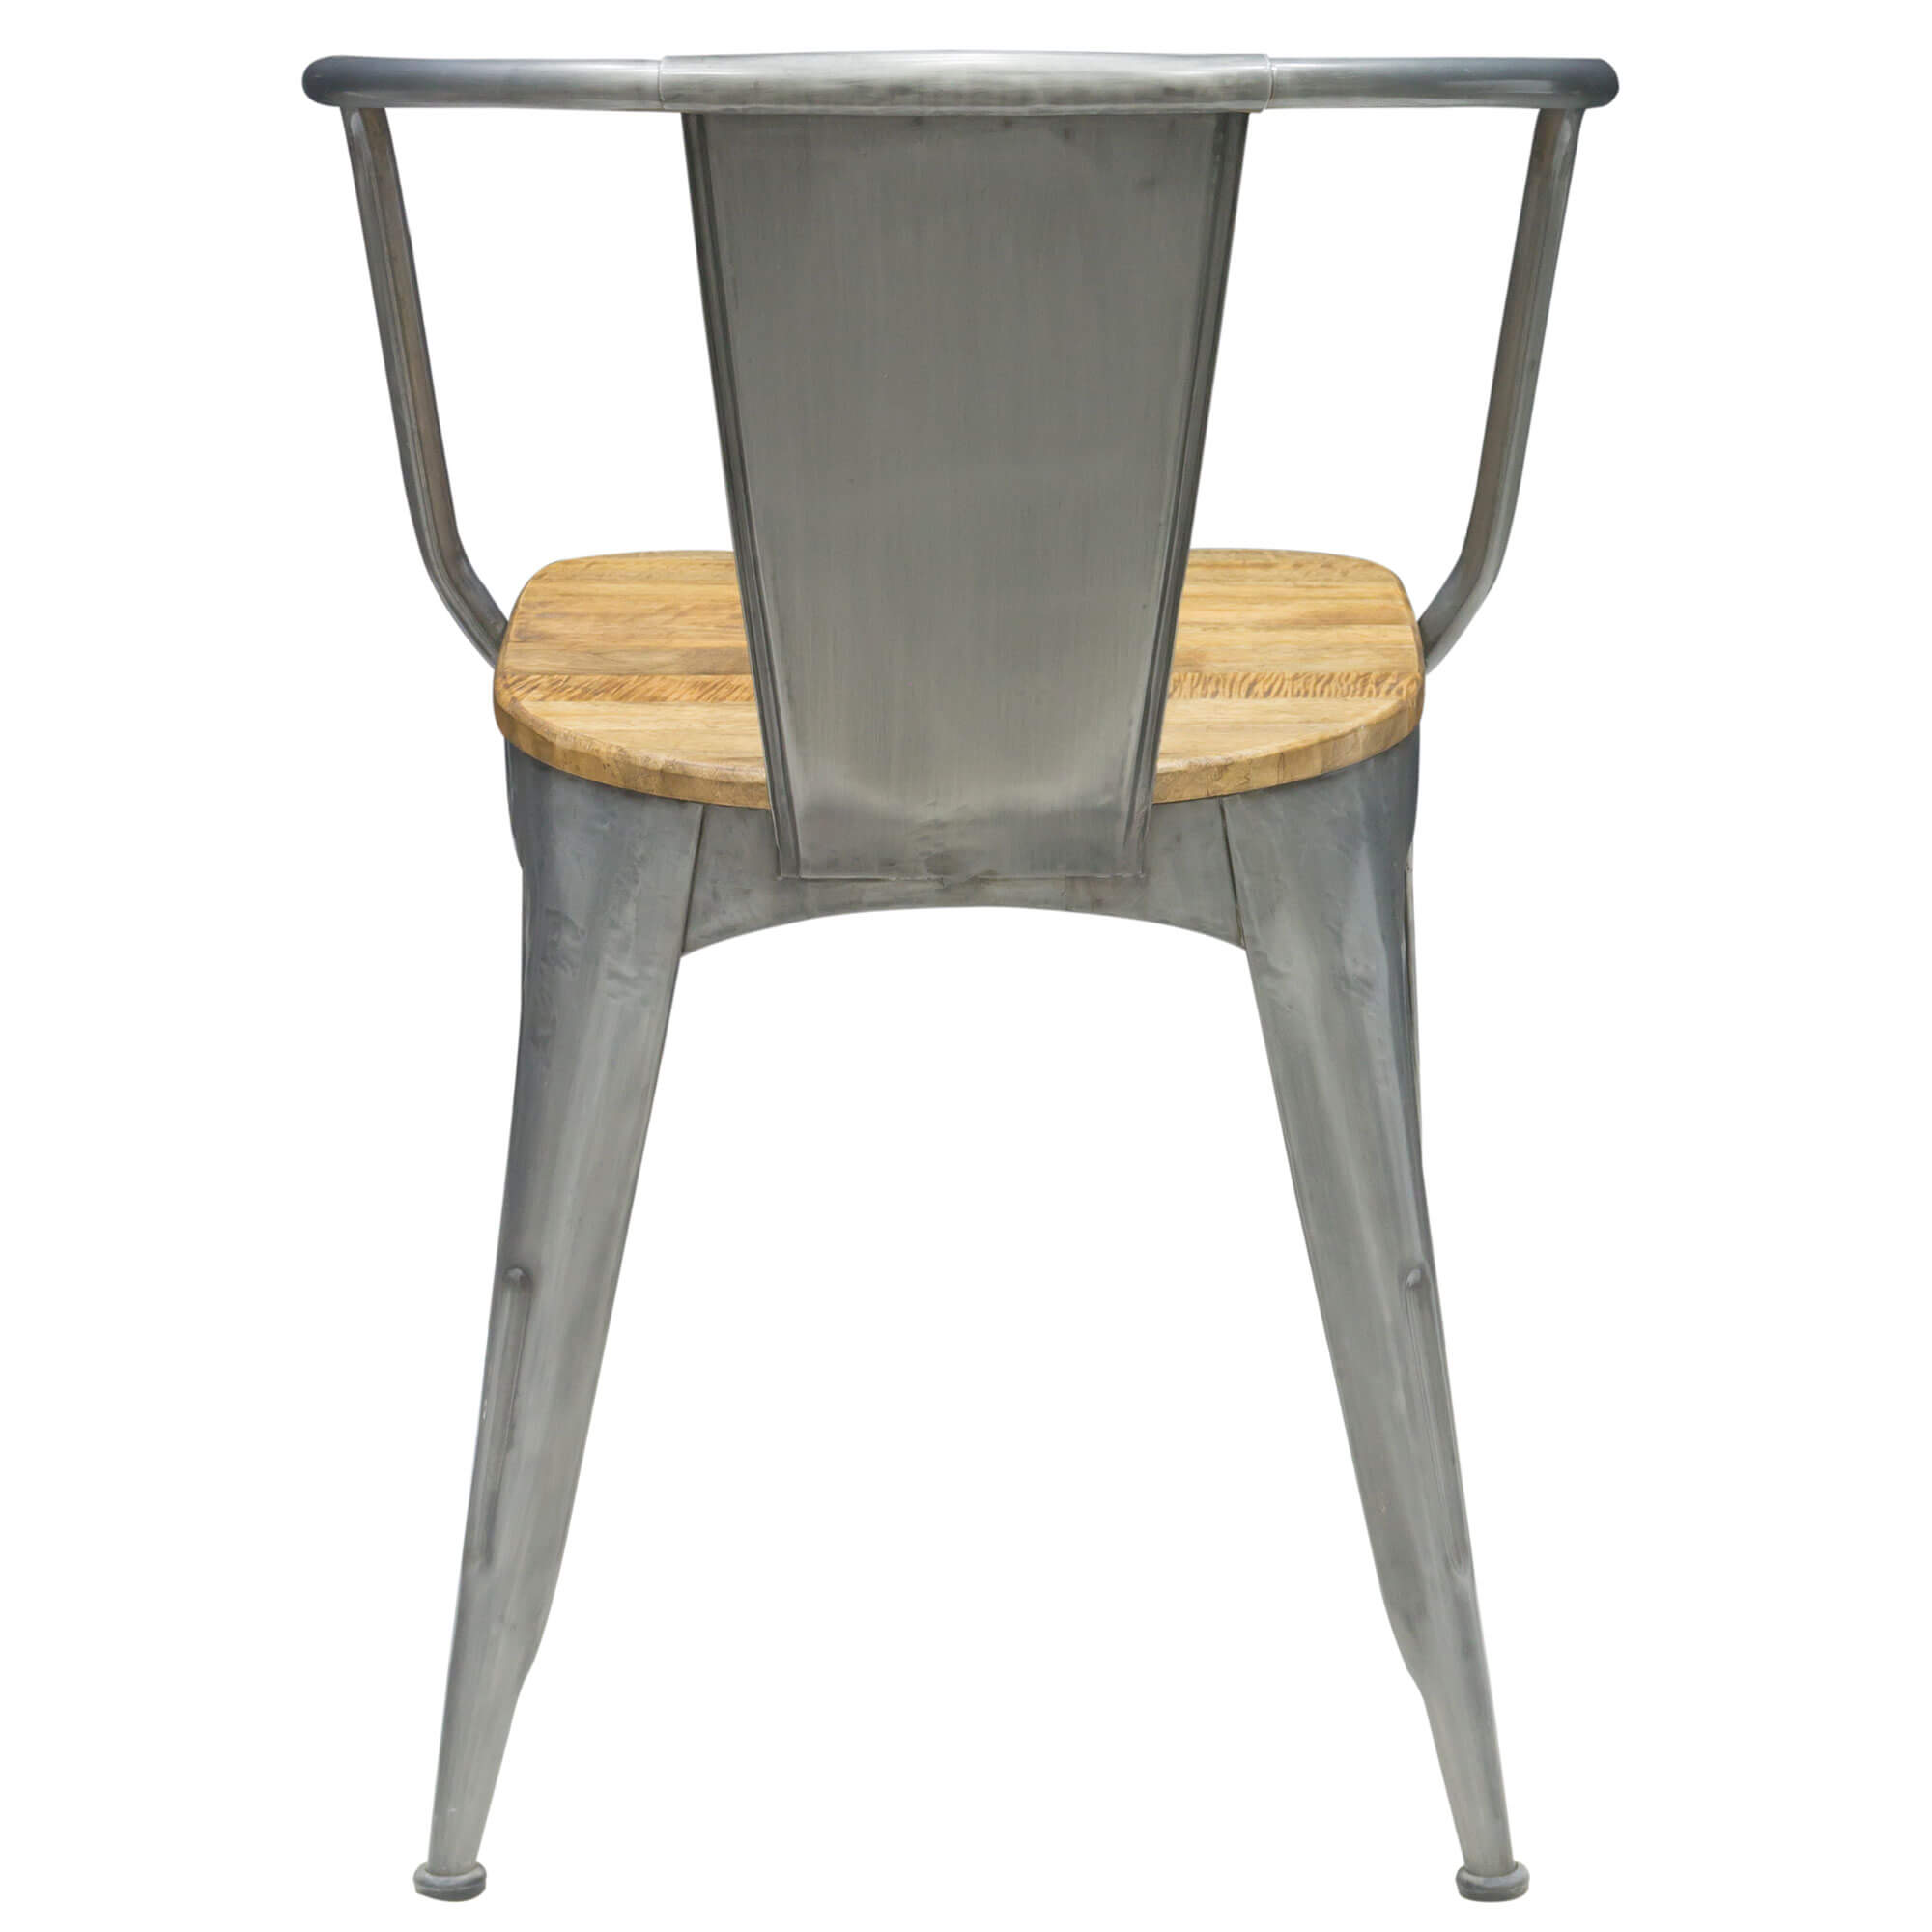 Urban Square Cafe Table x4 Chairs (80x80)